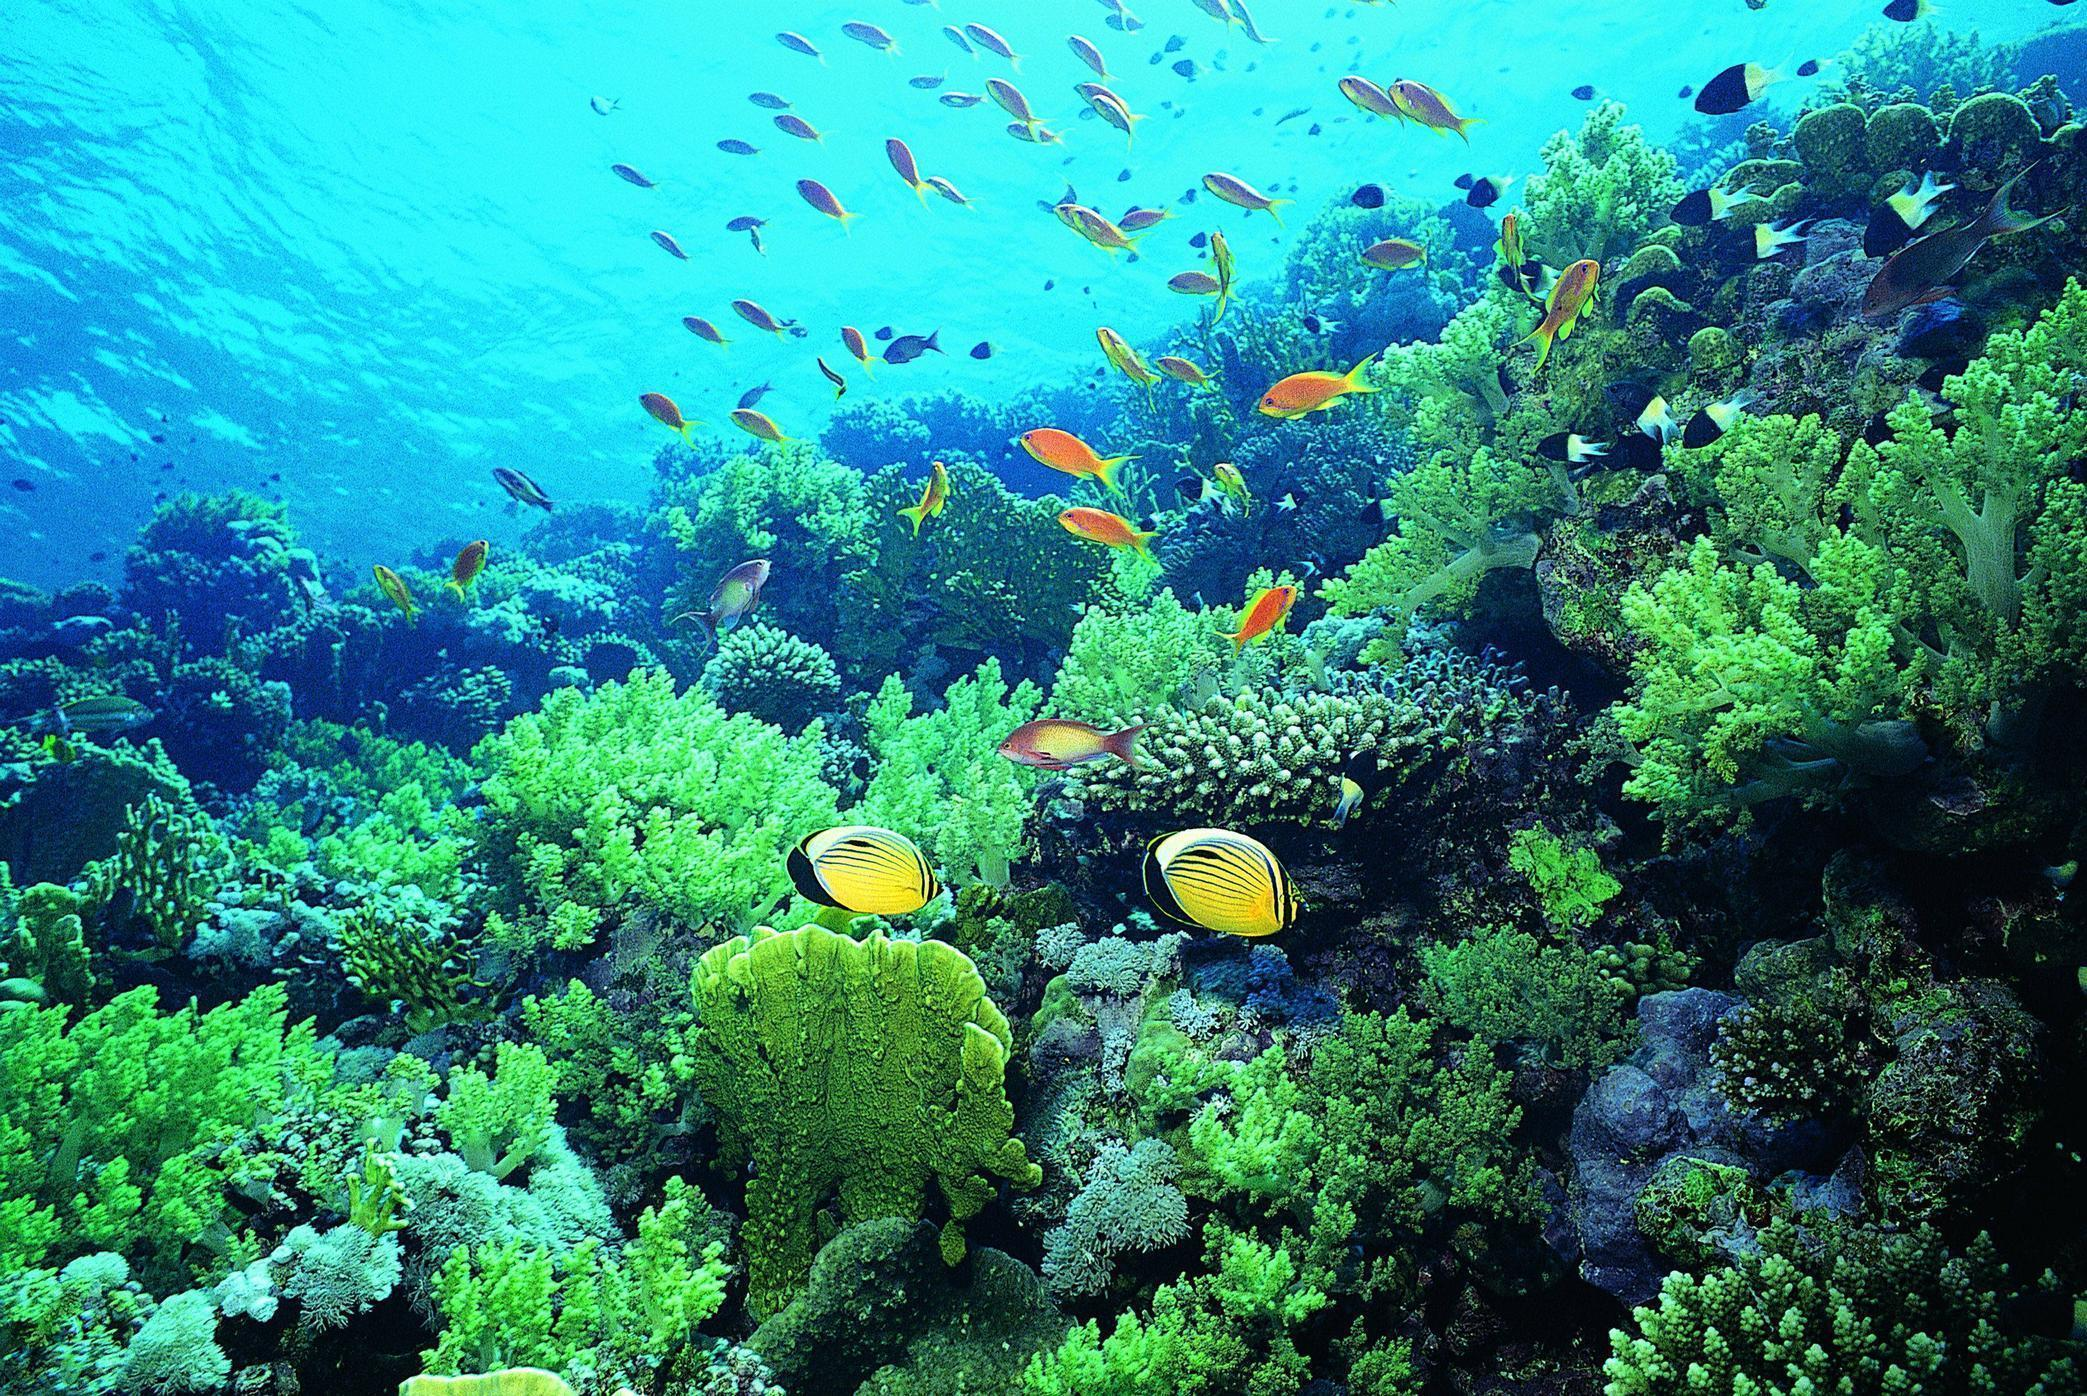 Green Coral Reef Under Water, Under Water Wallpaper, hd phone ...